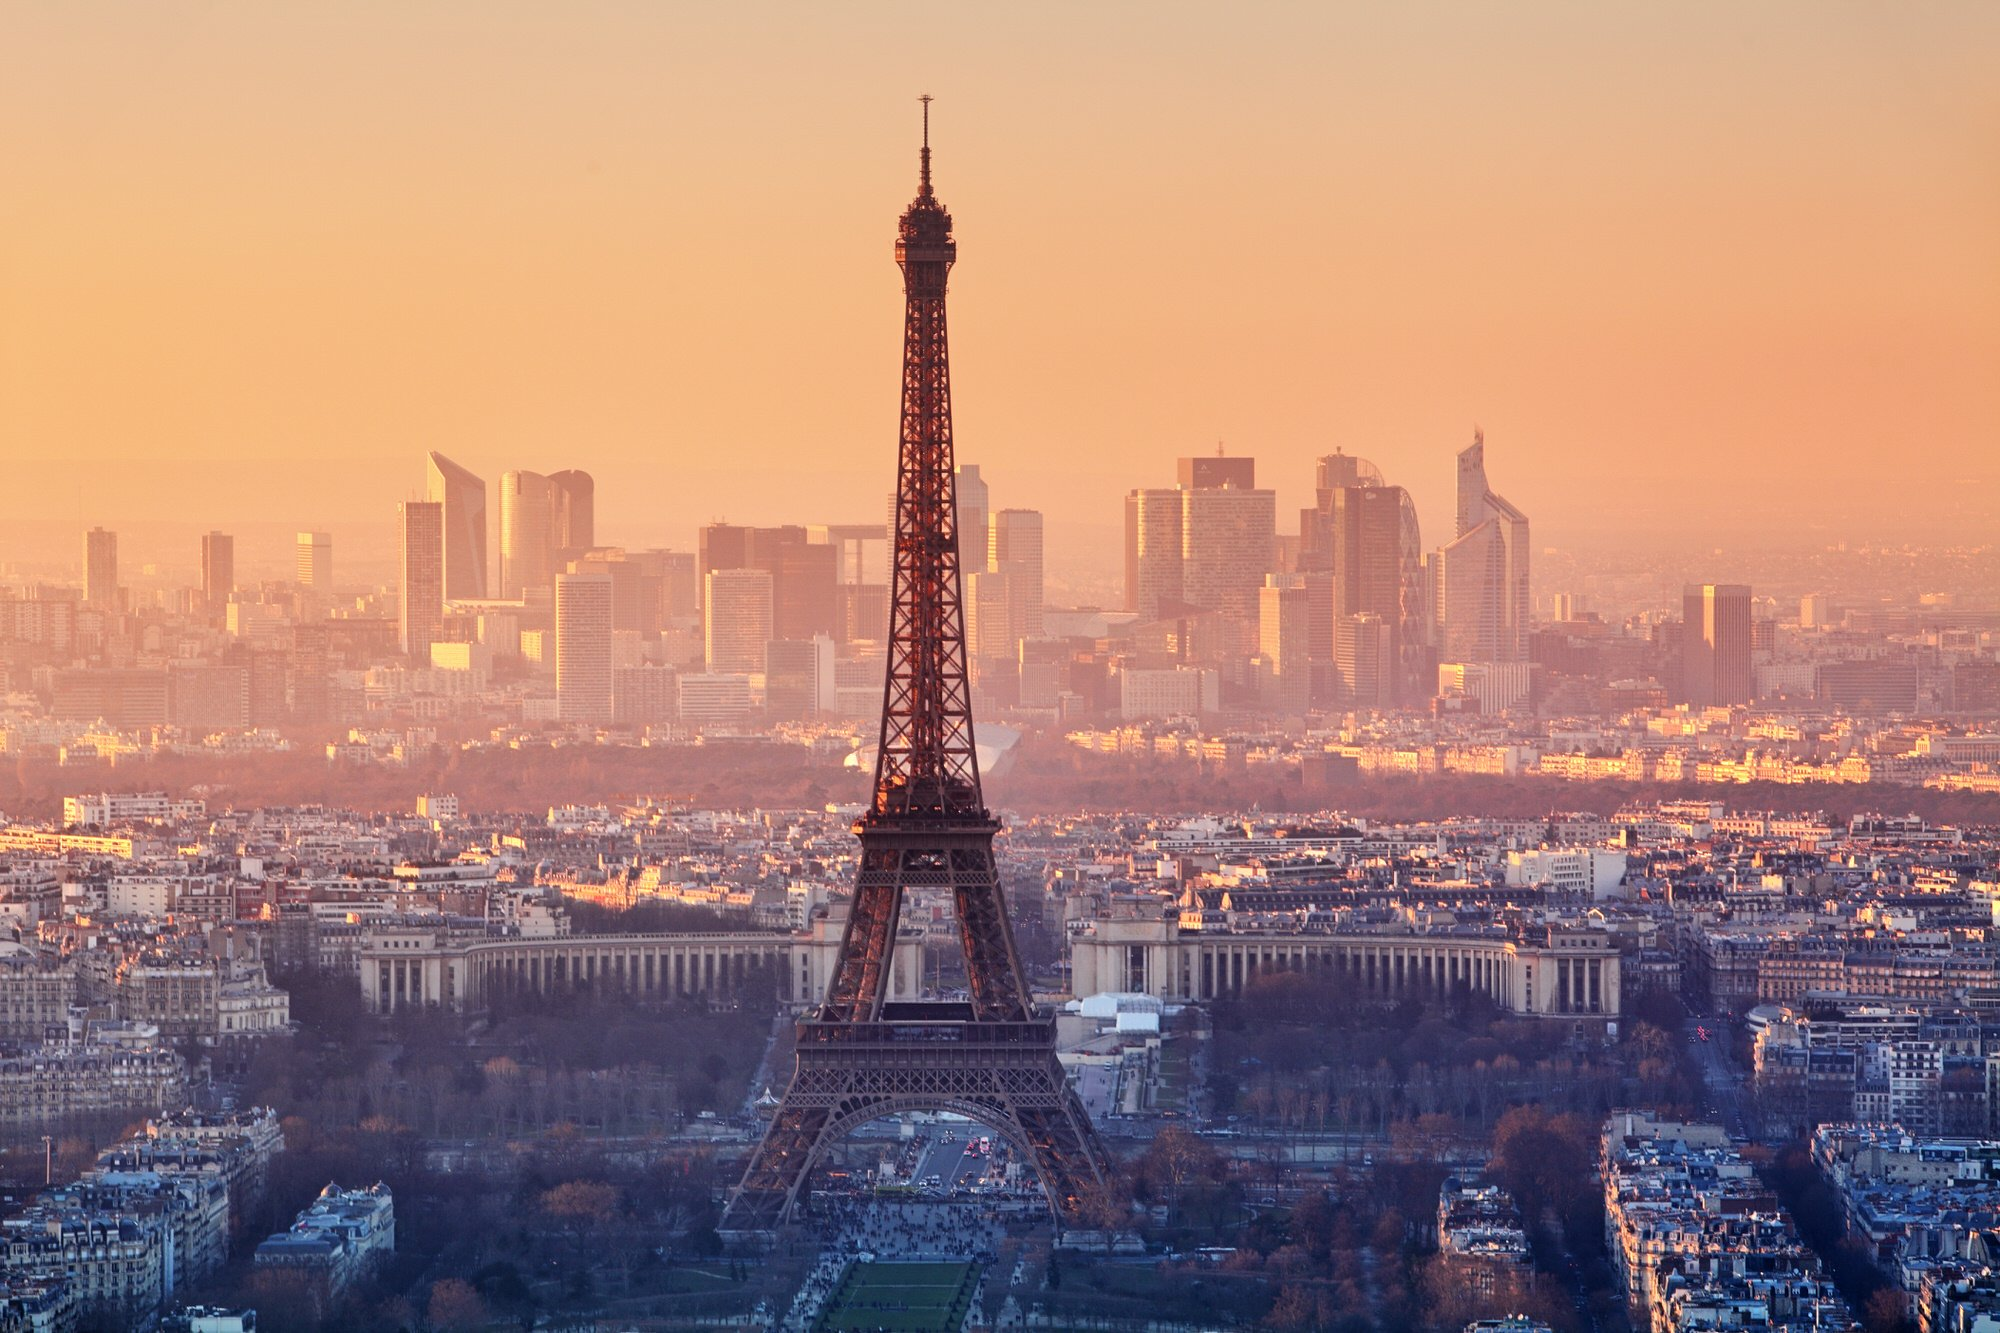 Have you always wanted to visit Paris? Go!